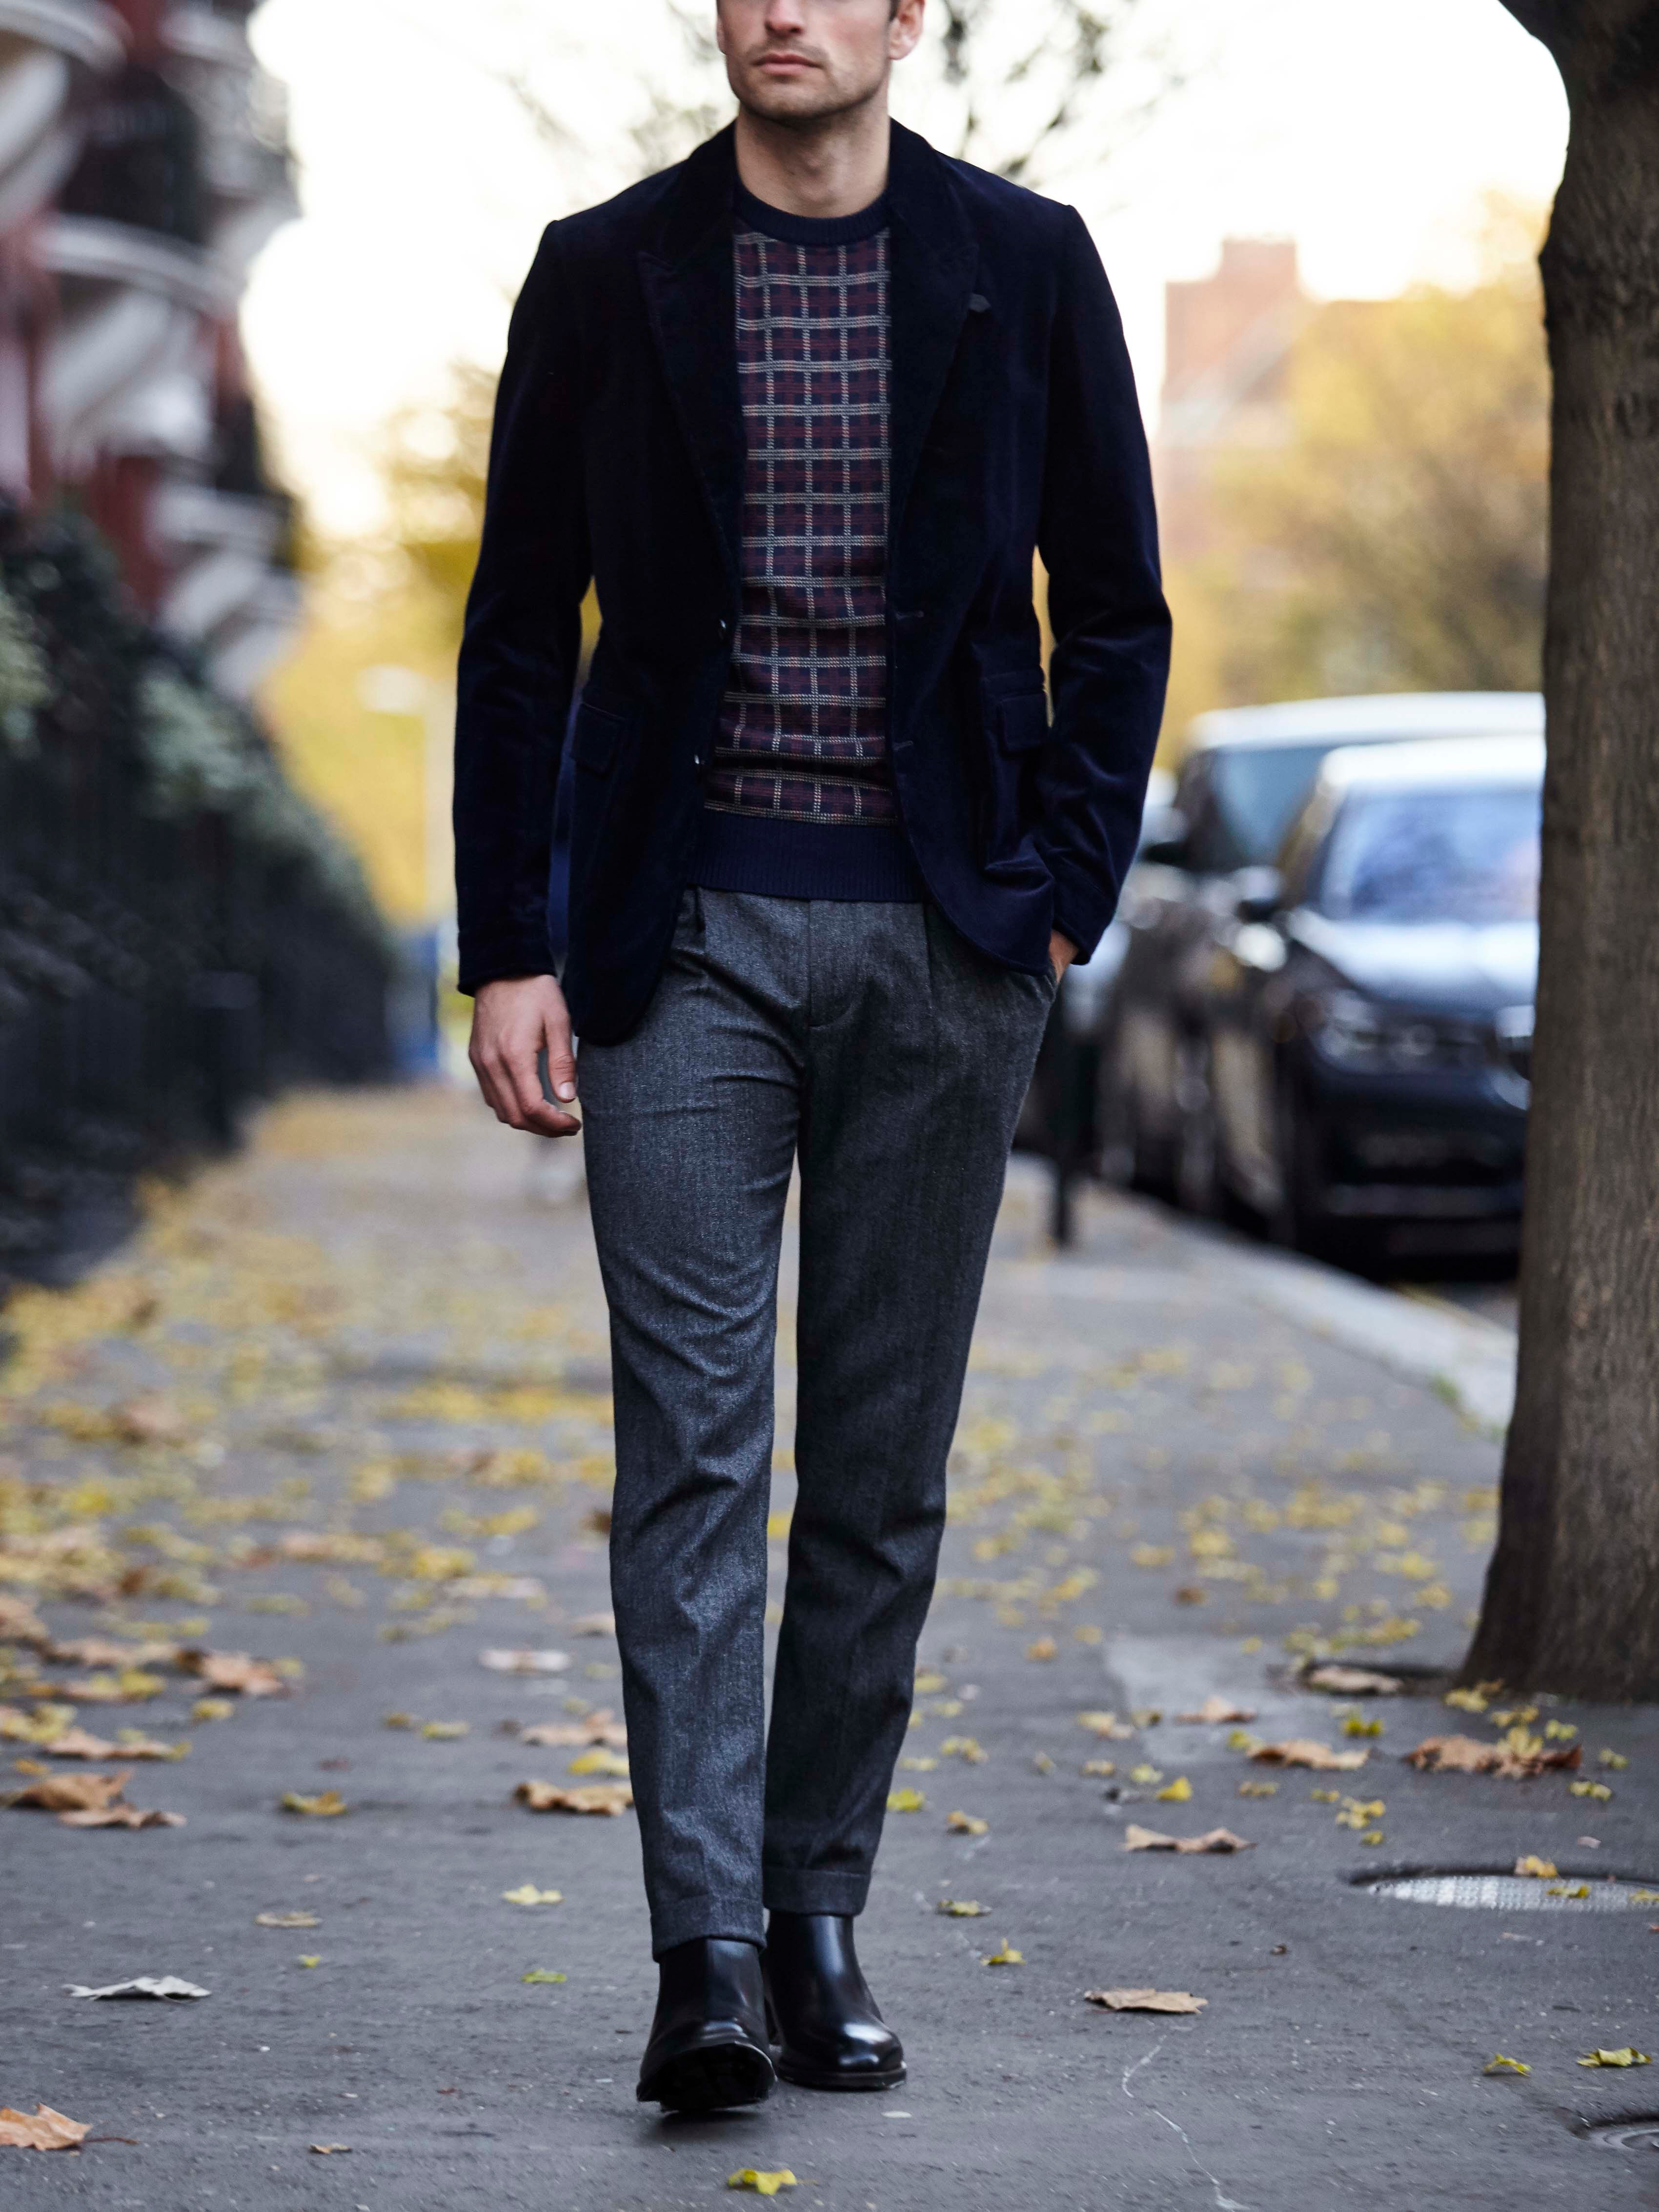 Men's outfit idea for 2021 with navy plain blazer, gray dress pants, black chelsea boots. Suitable for fall and winter.